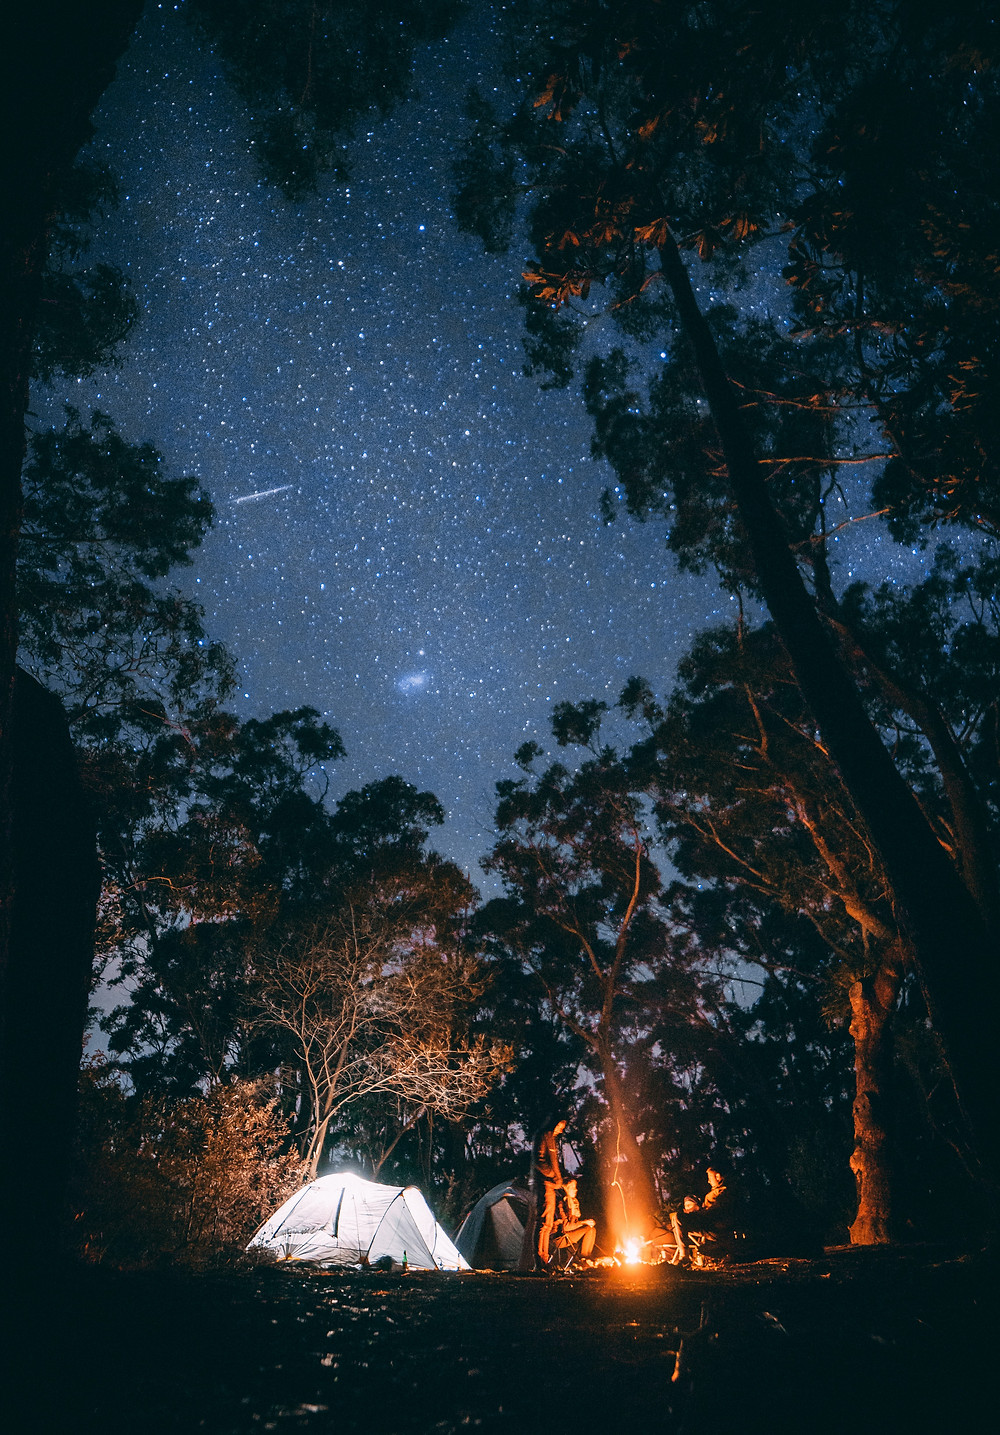 illuminated tent situated next to tall trees with a fire blazing at night under the stars